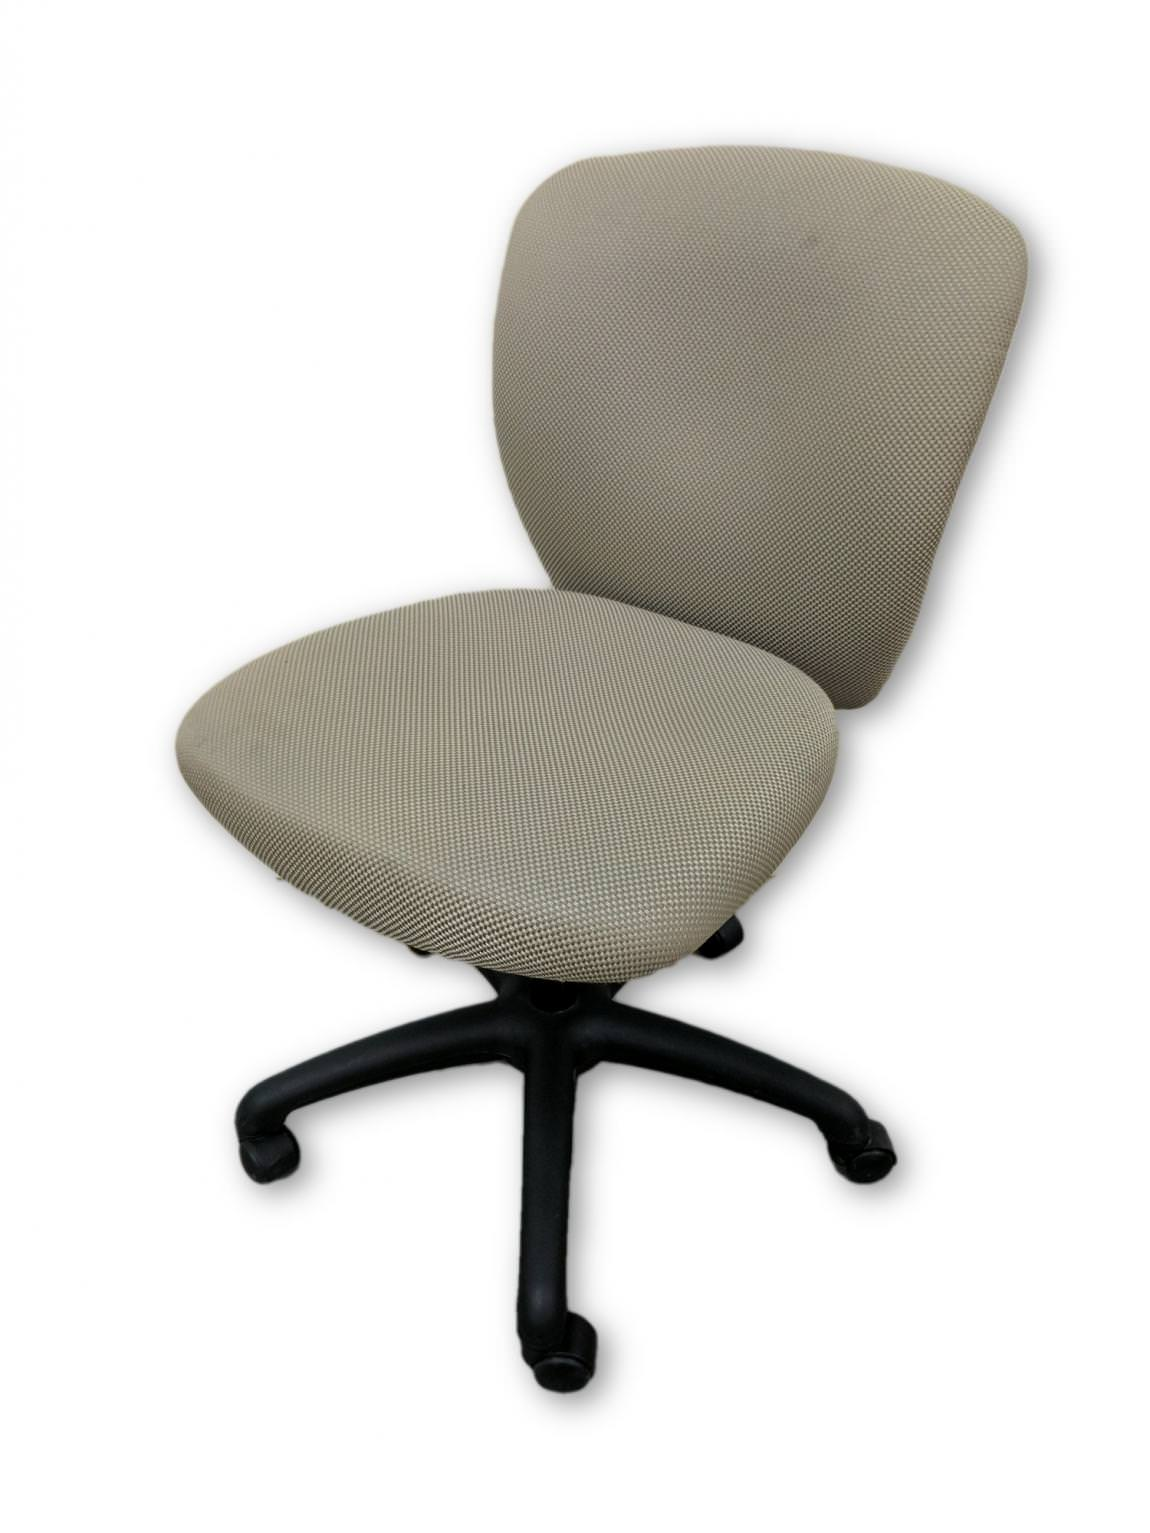 office chair without arms white chairs johannesburg images of sitonit seating rolling